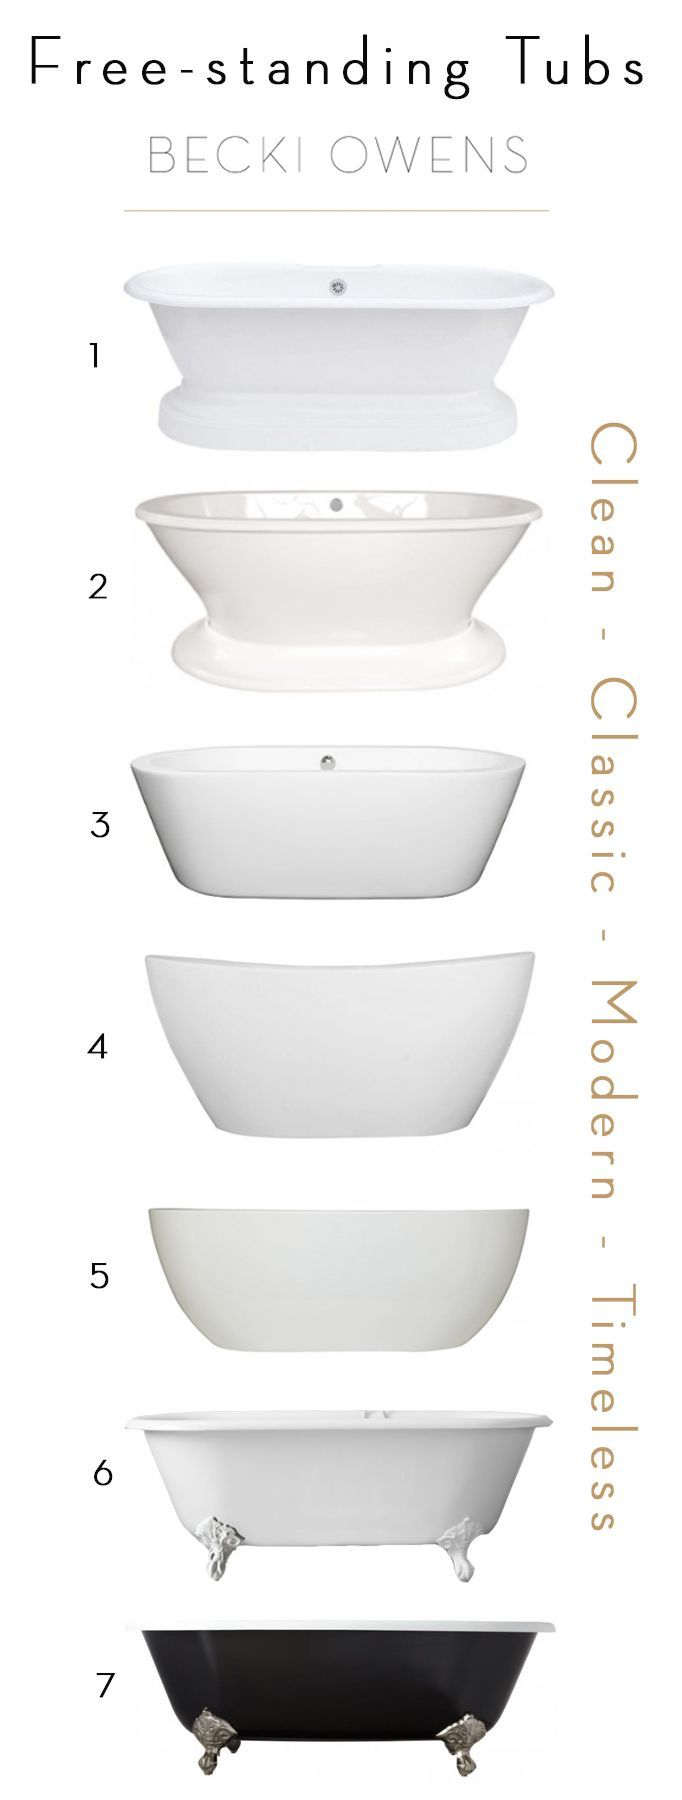 Ideas for Free-standing Tubs + Roundup 5 Ideas for Free-standing Tubs + Roundup - Becki Owens5 Ideas for Free-standing Tubs + Roundup - Becki Owens